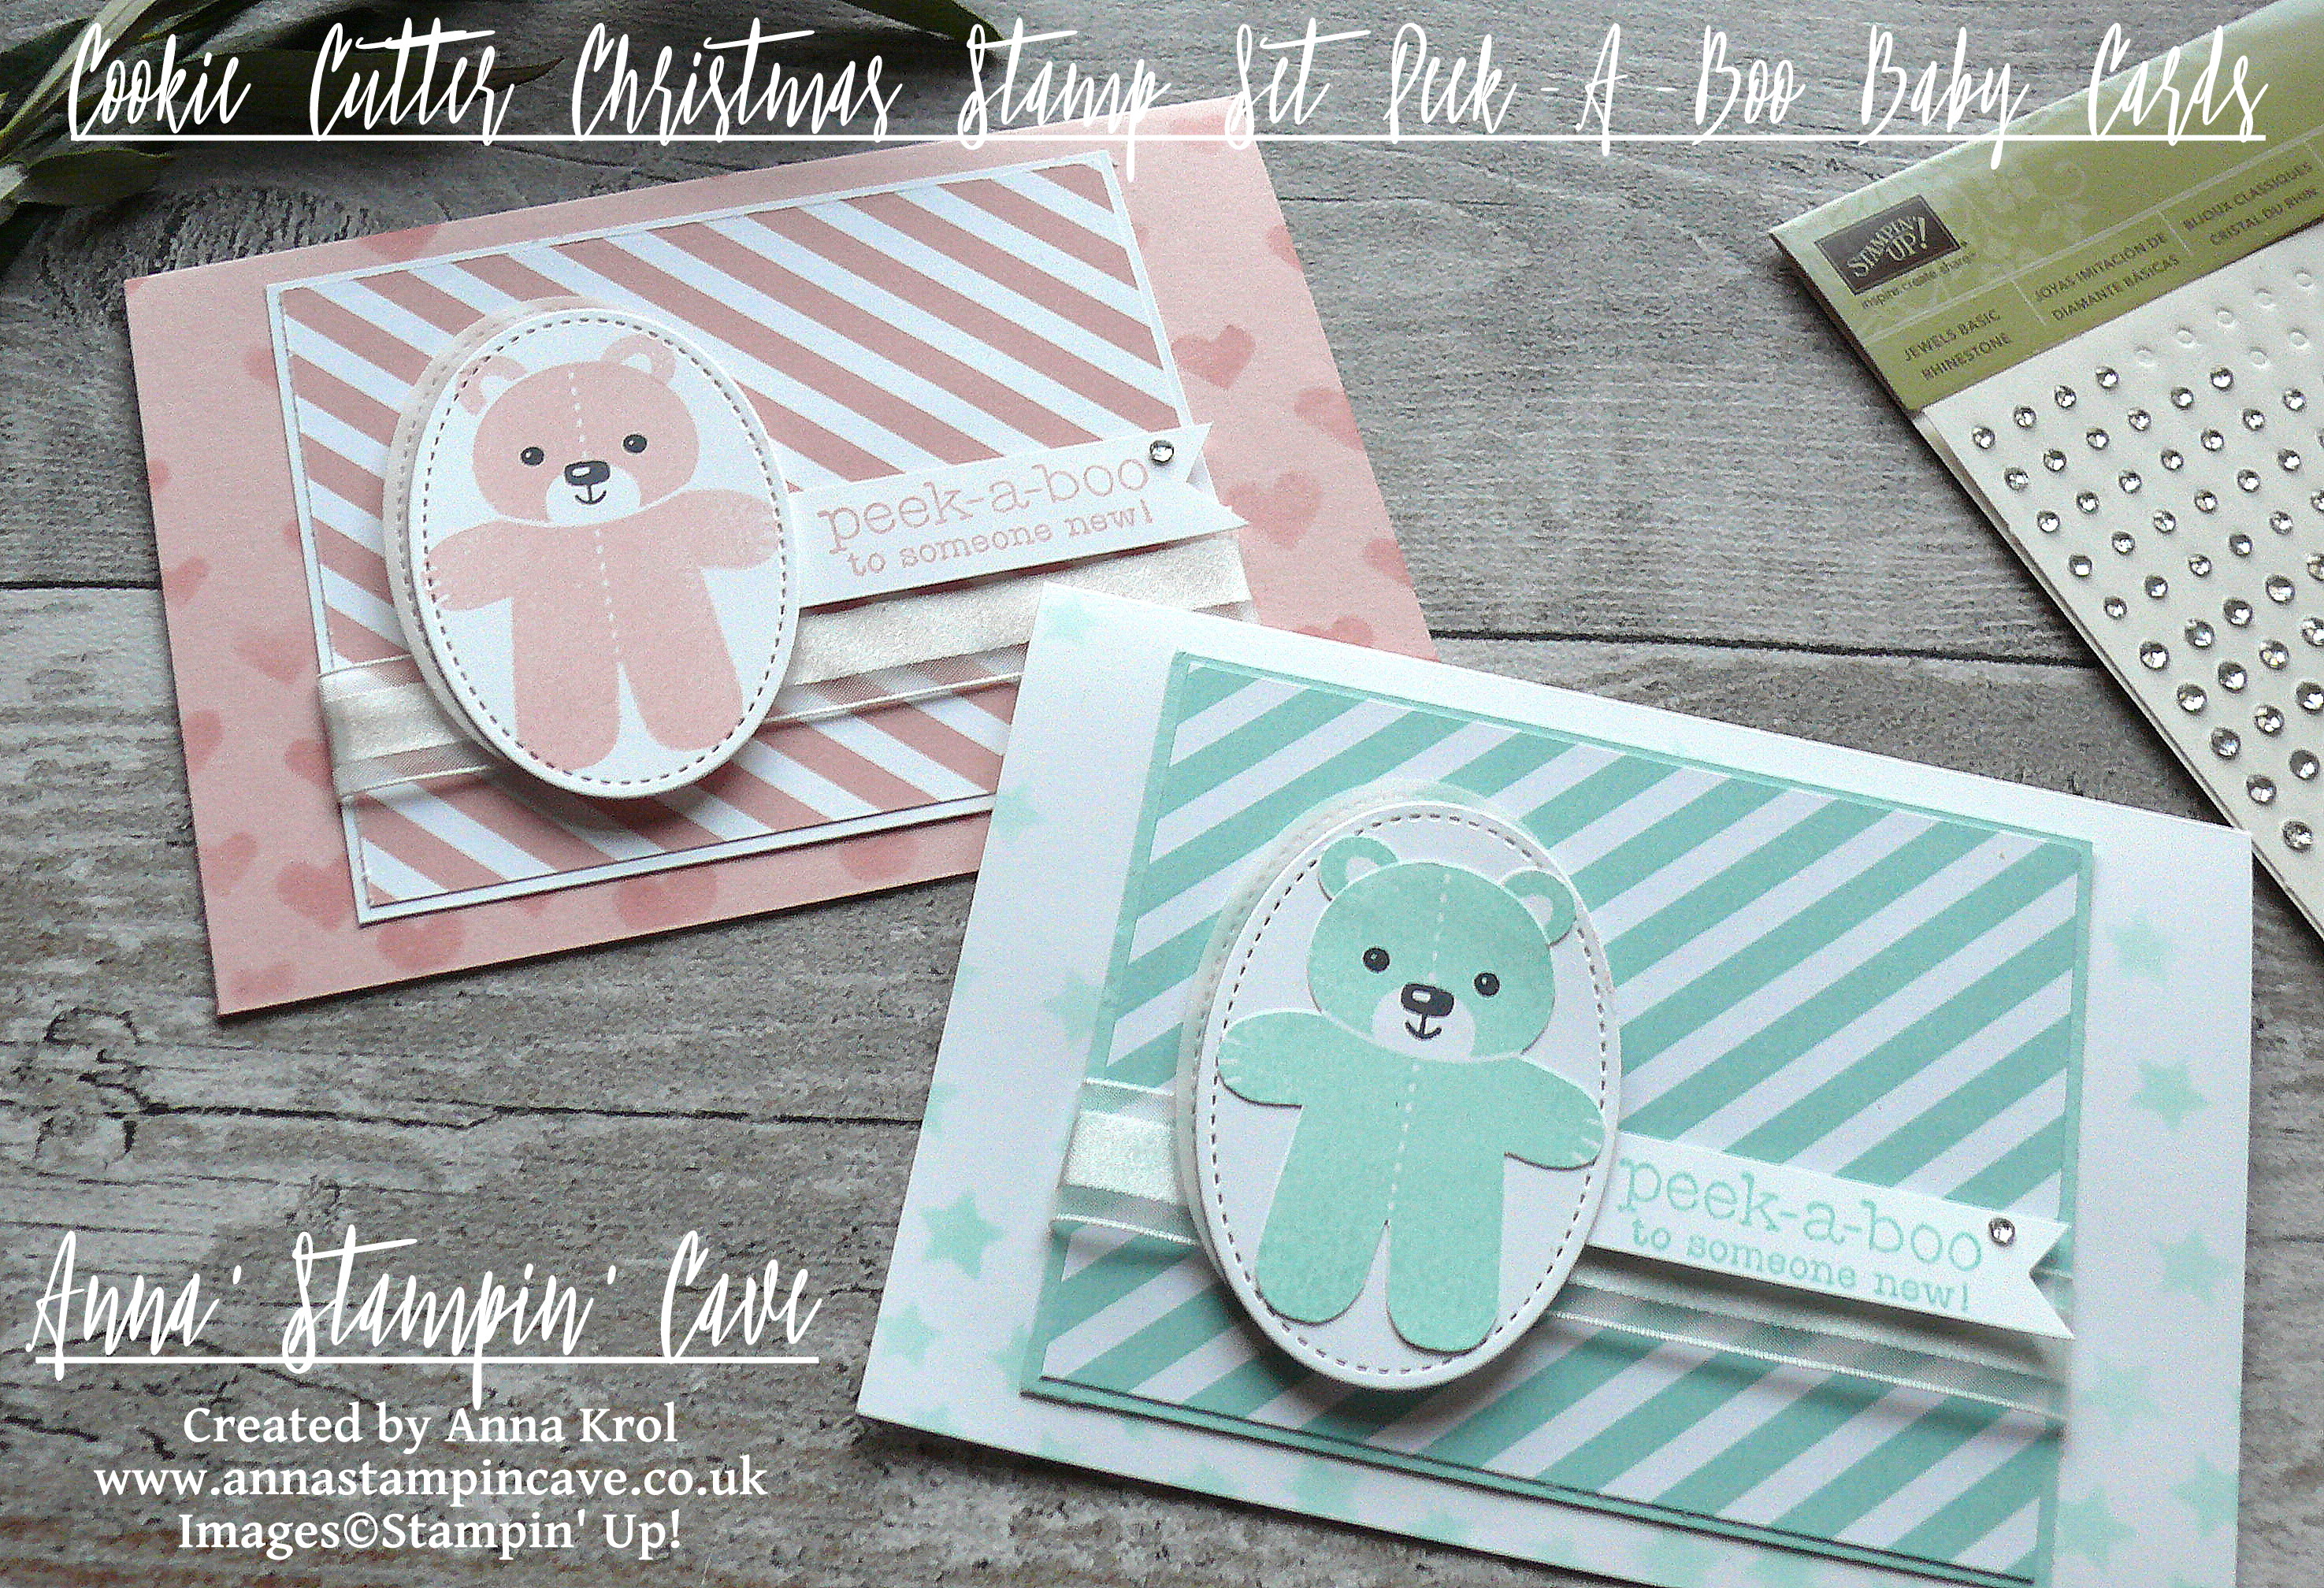 anna-stampin-cave-cookie-cutter-peek-a-boo-baby-card